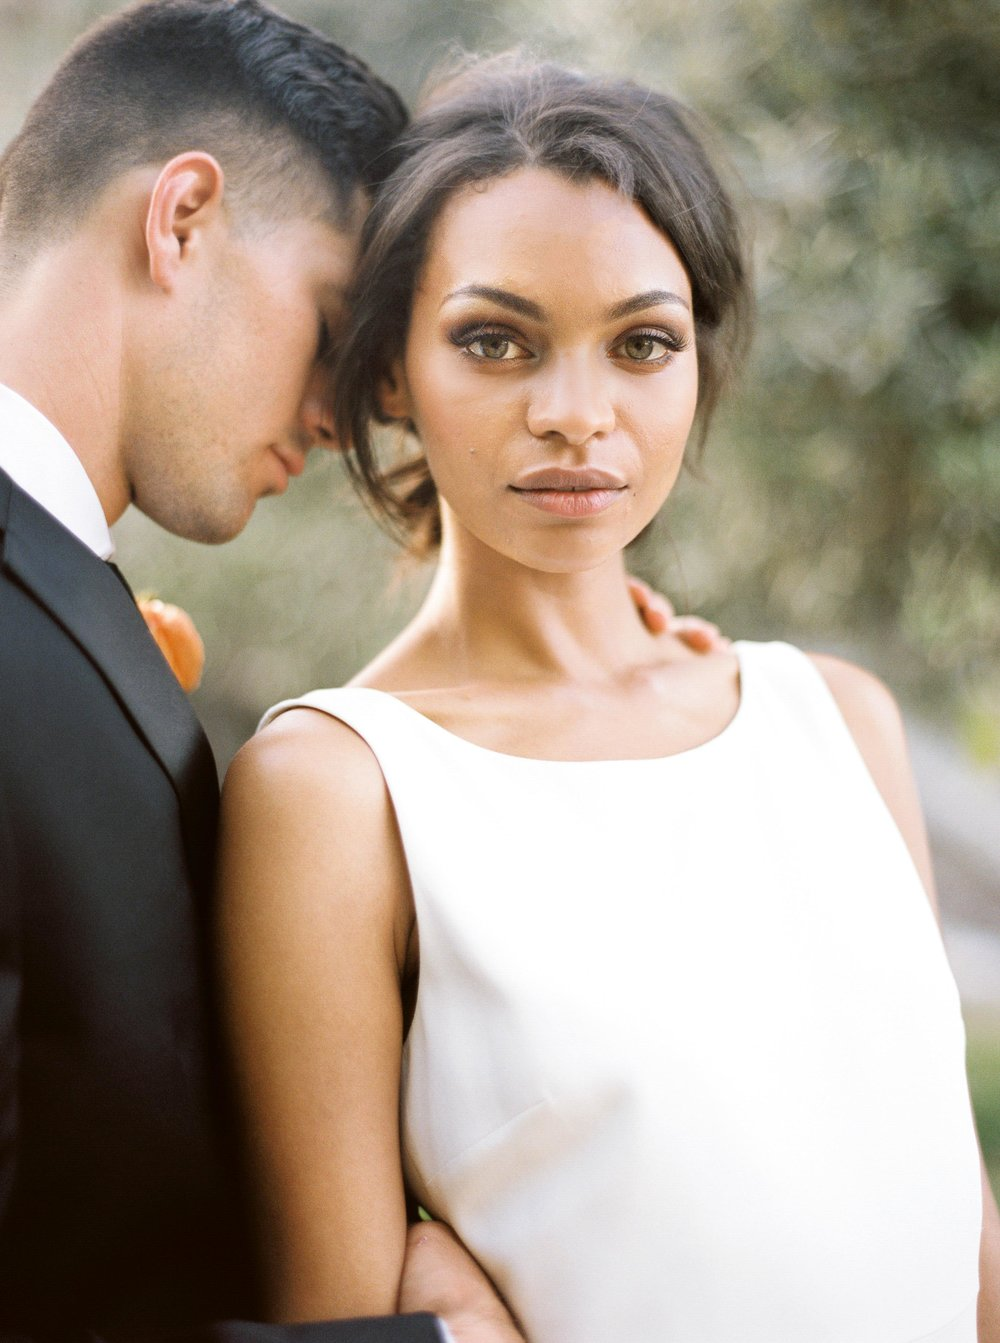 054napa_wedding_photographer_and_videographer_destination_and_elopement_photography.jpg